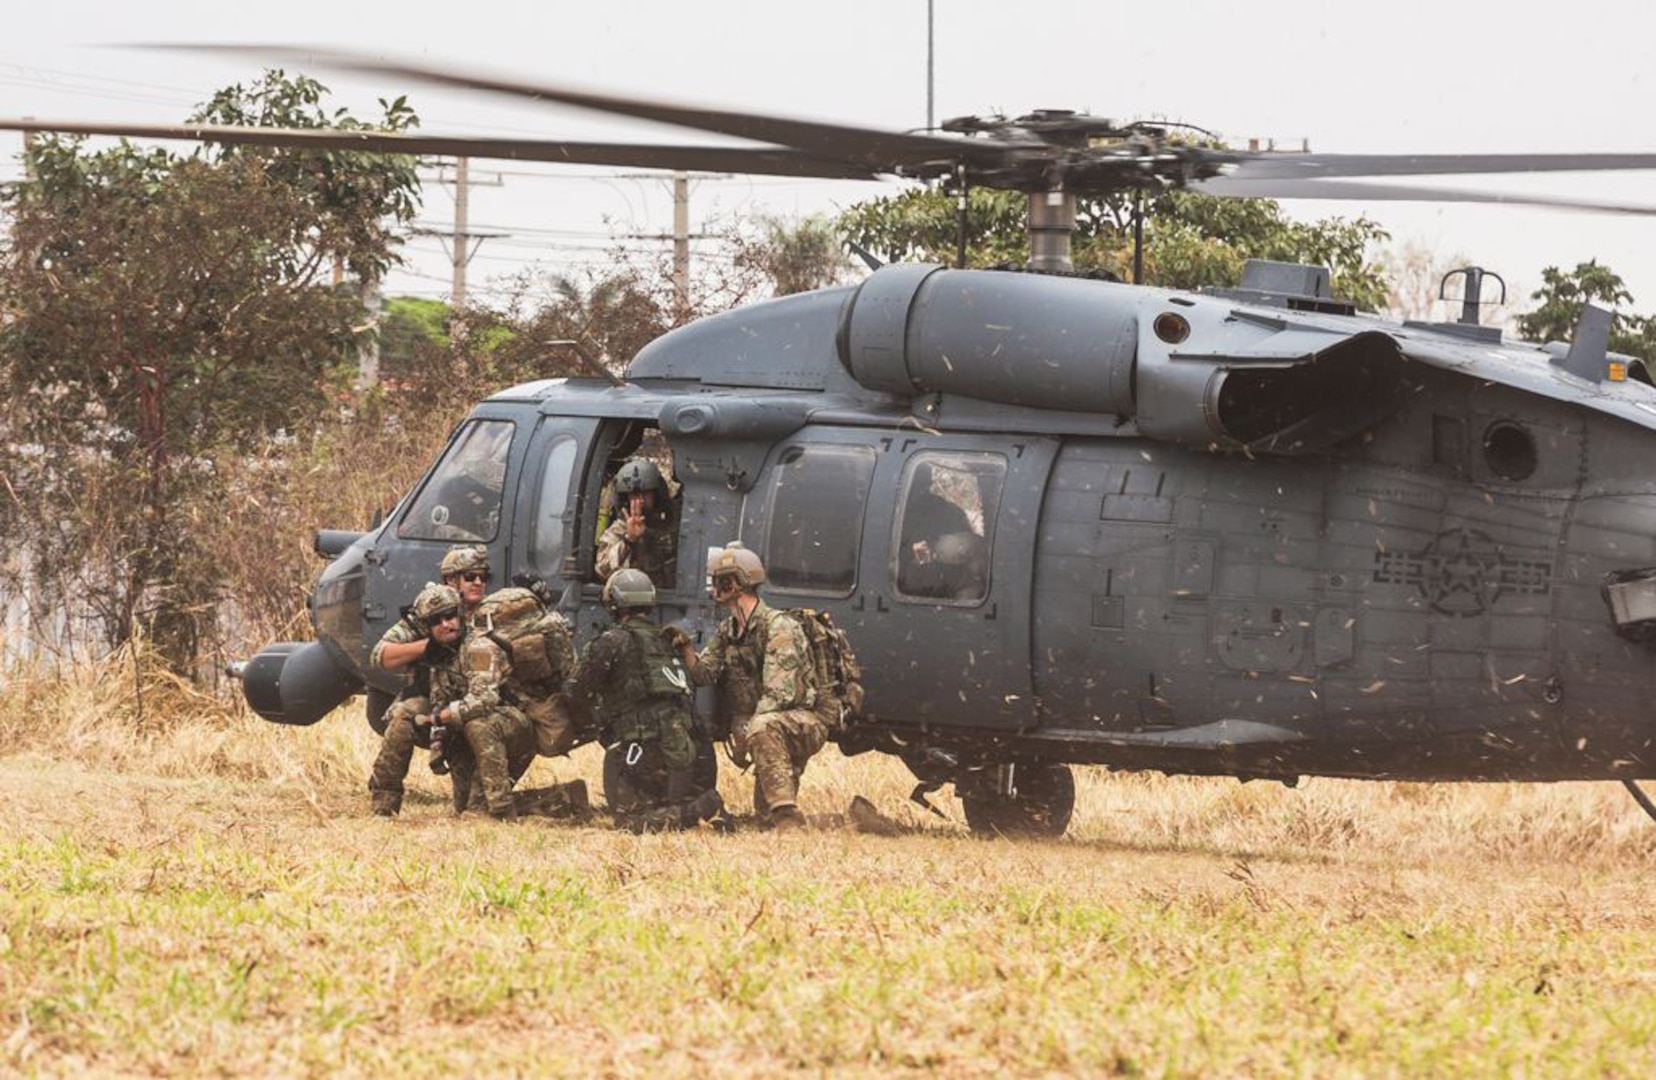 Brazilian airmen and pararescue Airmen from the New York Air National Guard's 106th Rescue Wing exit an HH-60 Pave Hawk  while participating in Exercise Tapio 2021 at Campo Grande Air Base, Campo Grande, Brazil. The exercise Aug. 19-31 was part of the National Guard's State Partnership Program.